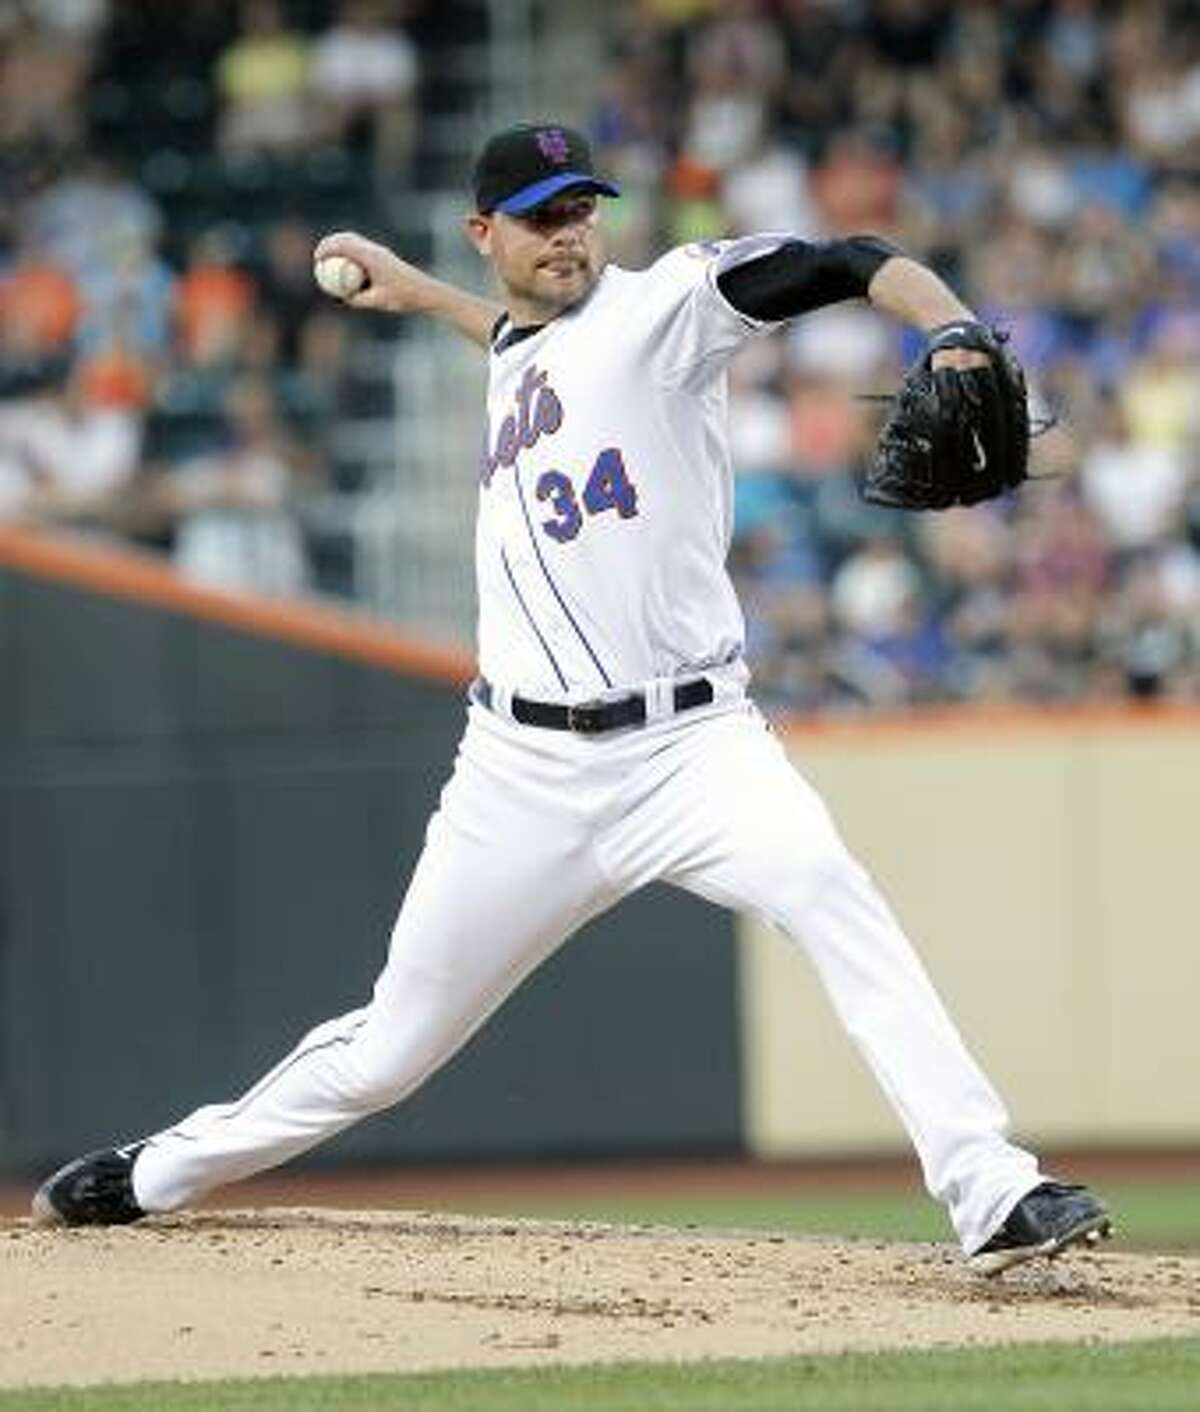 Mike Pelfrey, Mets: He's one of only three NL pitchers with 10 victories, and his 2.93 ERA actually ranks 12th in the NL. He's also the only guy with 10 wins and a save.